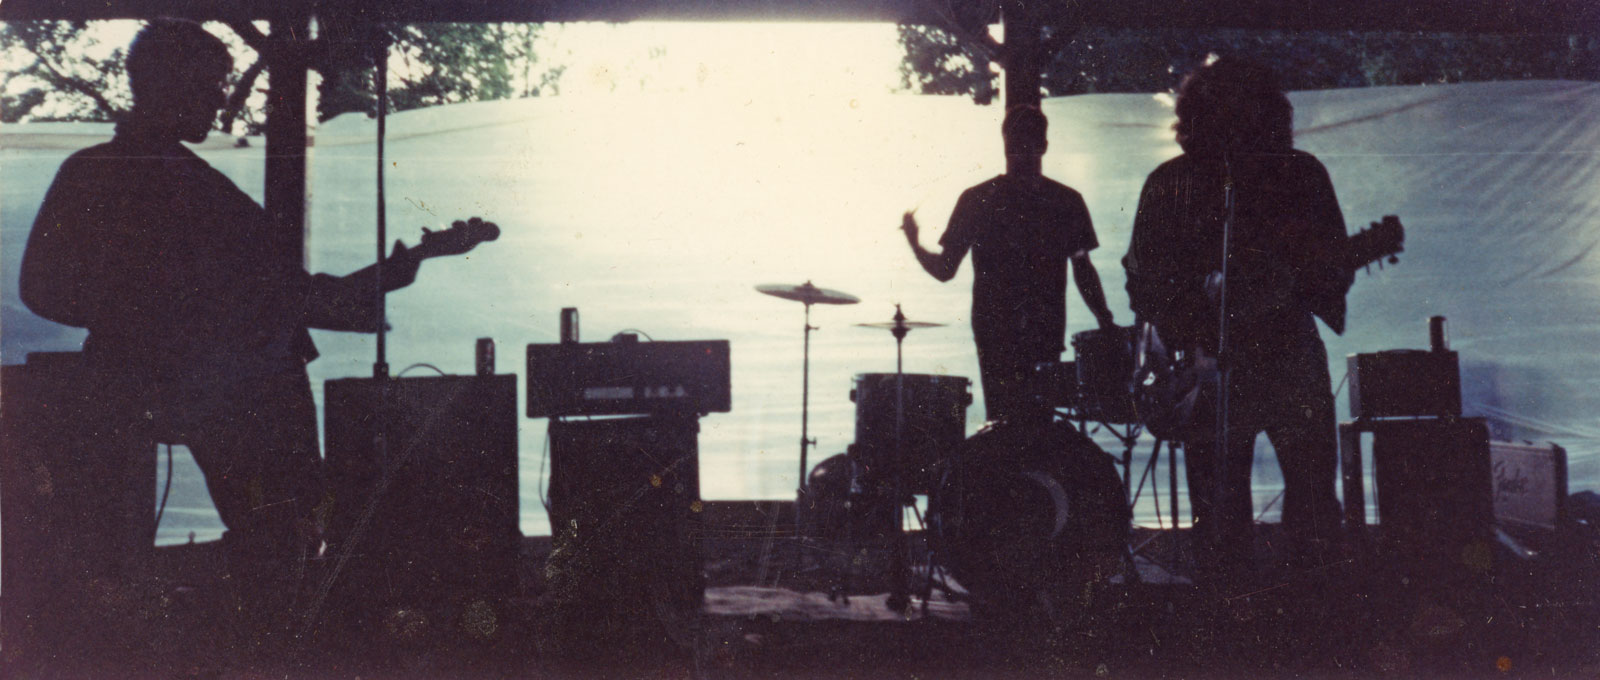 Petes Rock Band performing at Infest in Genesee Valley Park, Rochester NY 1992